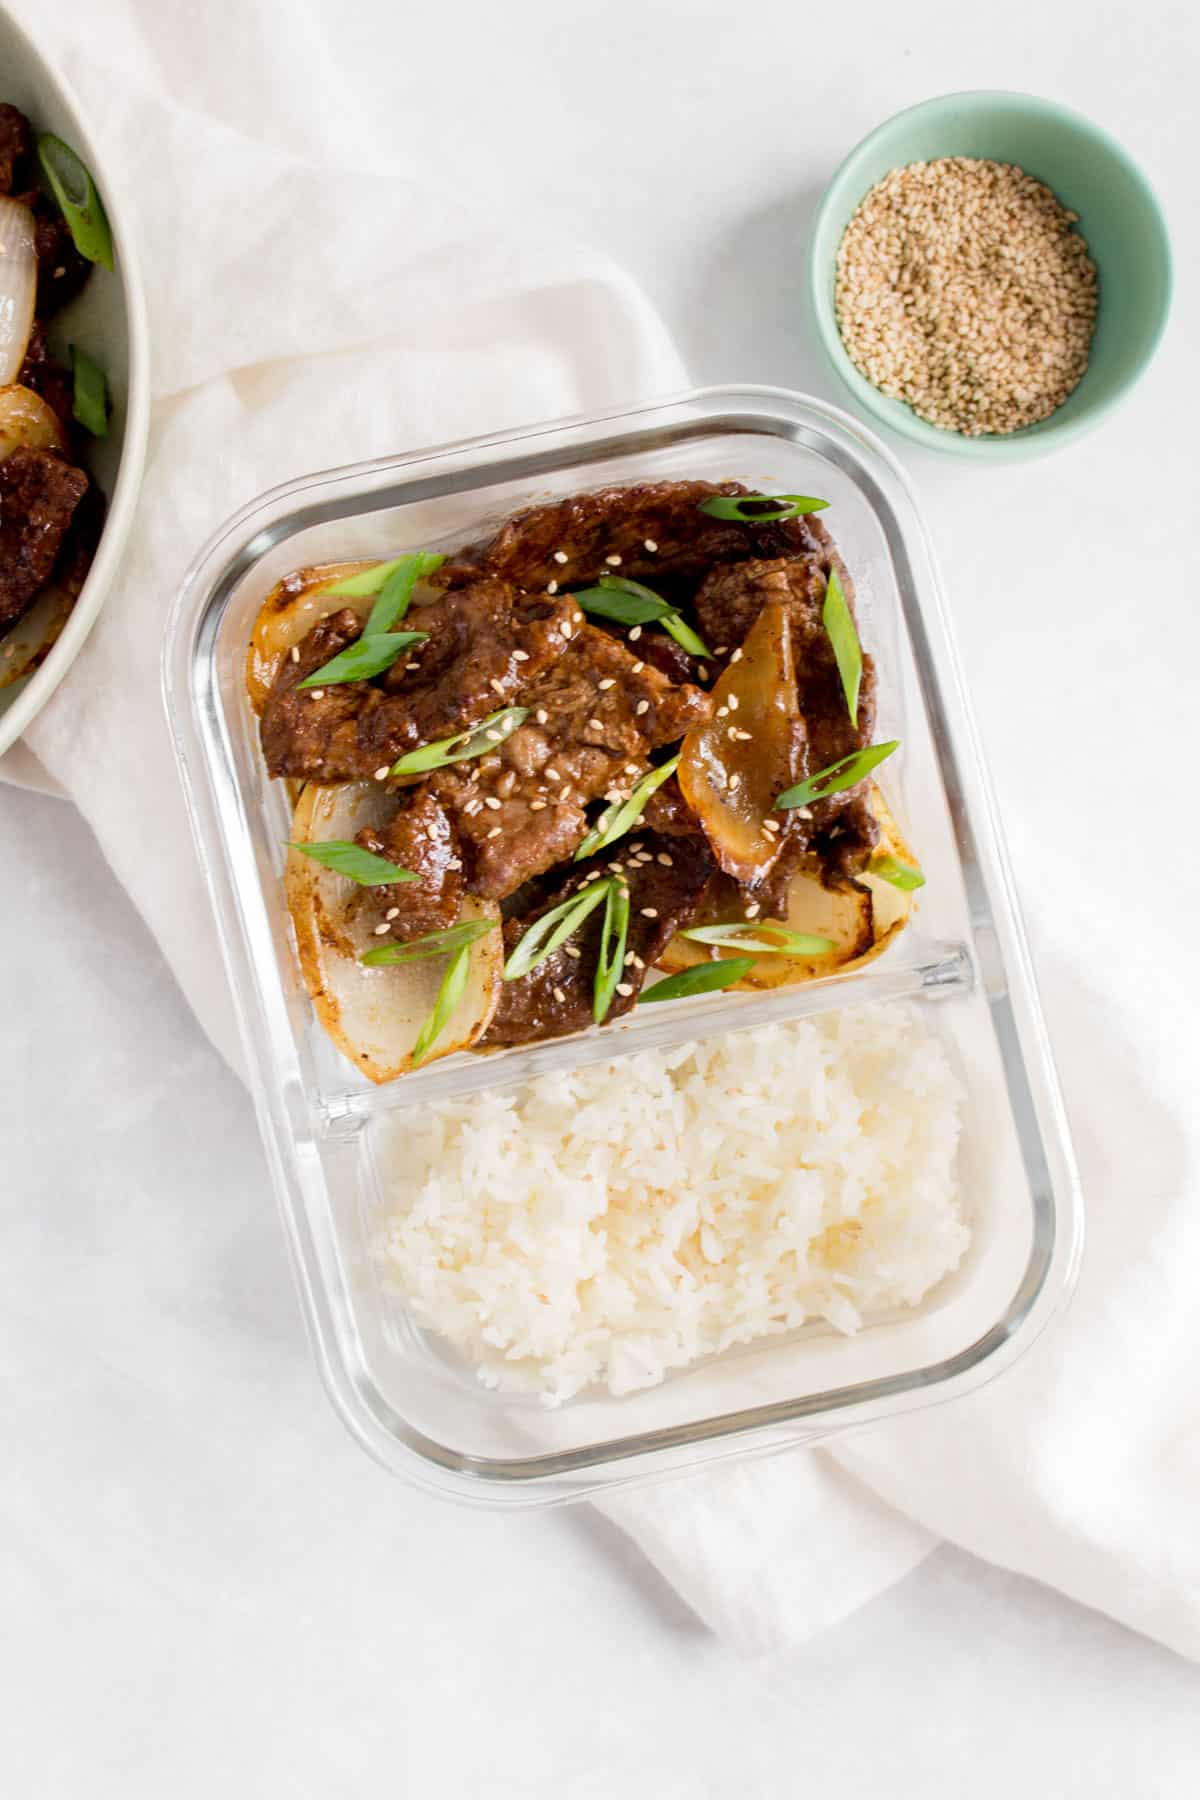 A meal prep container with two compartments with rice in one and beef and onions in the other.